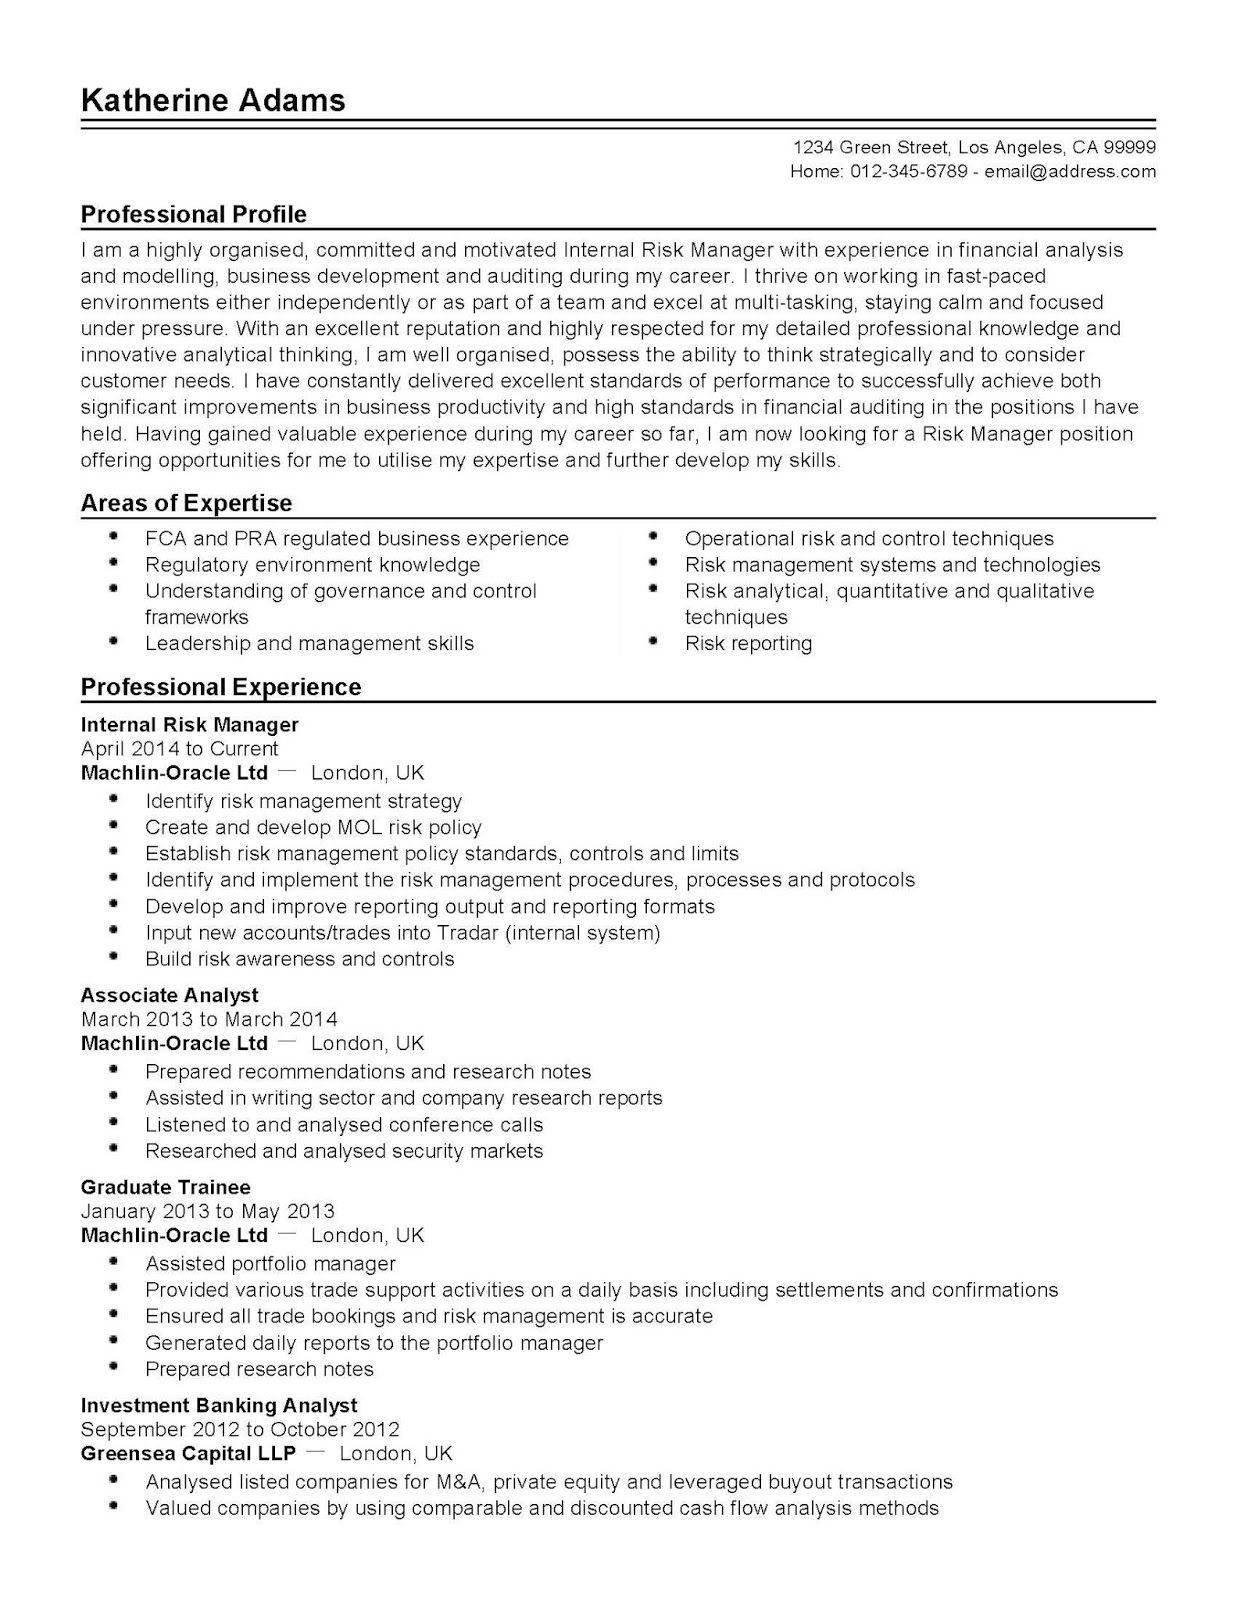 Safety Director Resume Summary 2019 Safety Director Resume Sample 2020